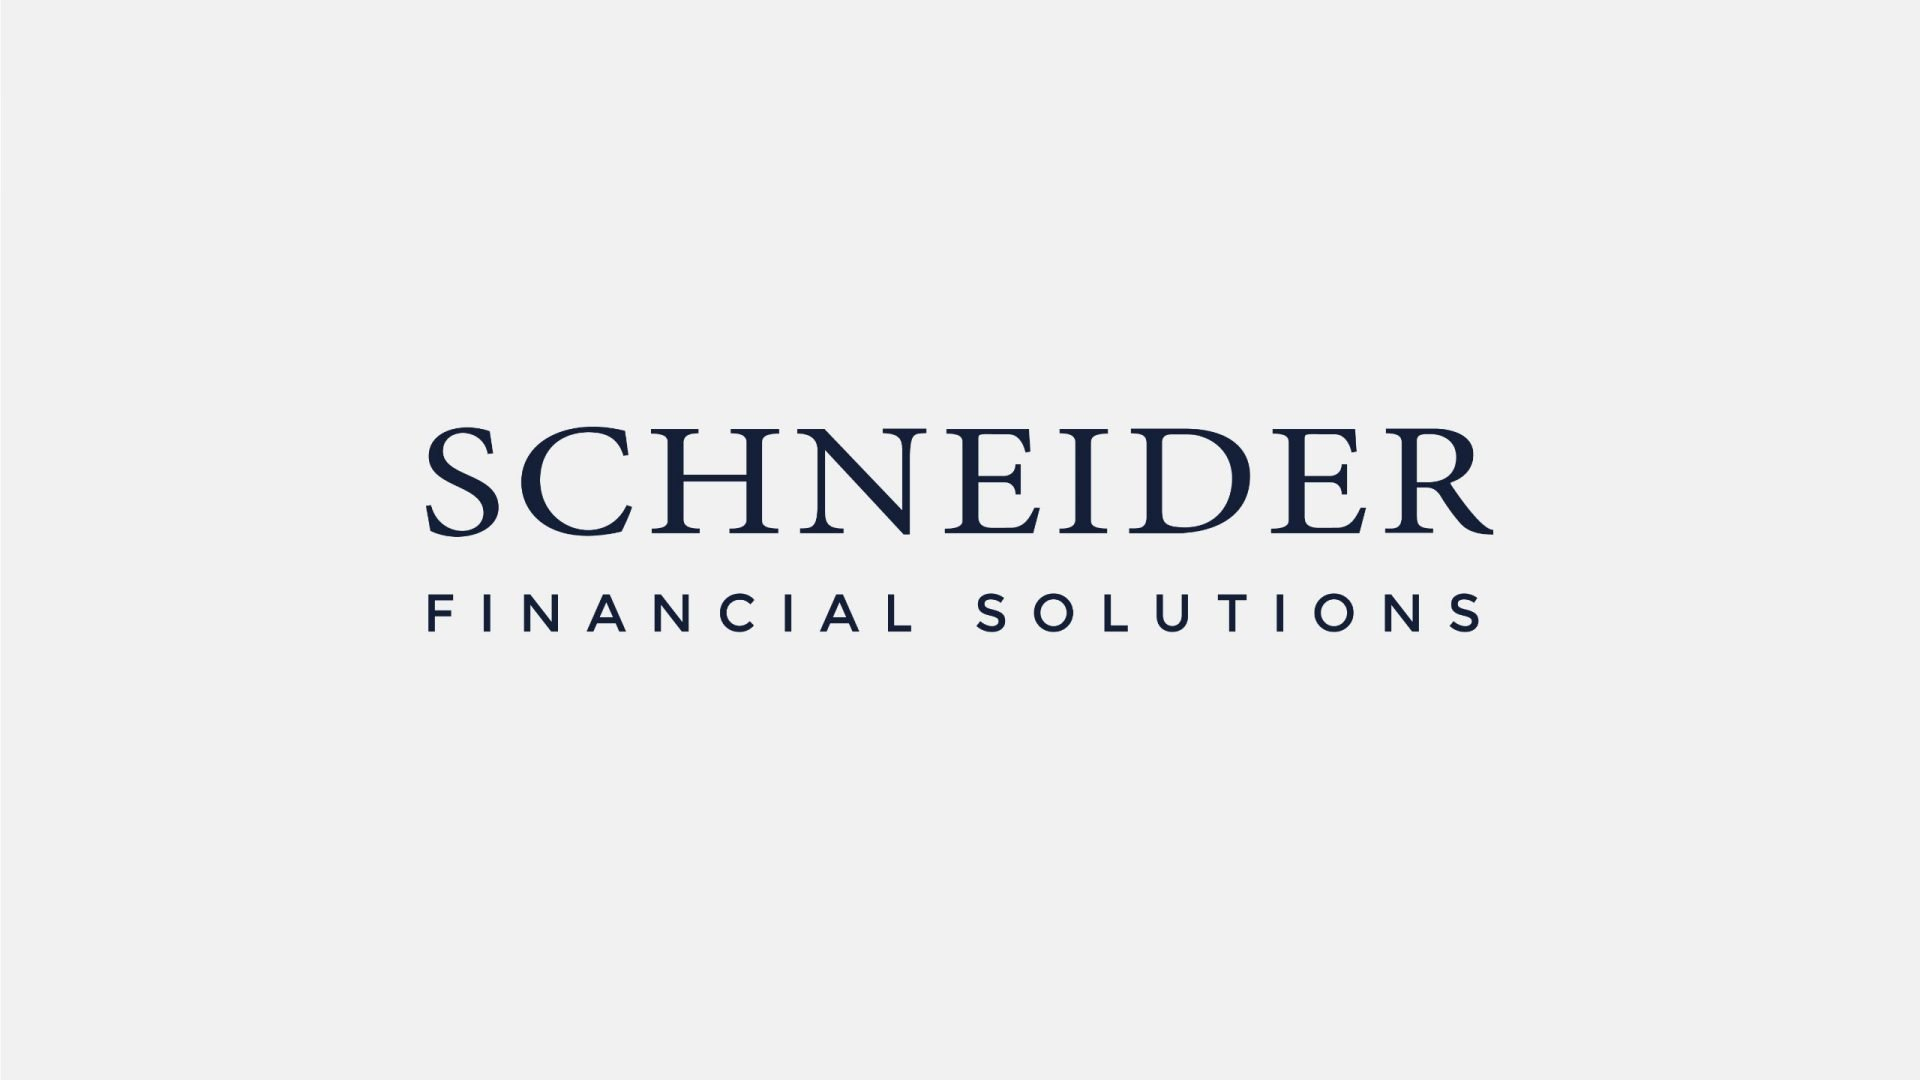 Crate47 Schneider Financial Services rebranding and website design - Brand design Written logo